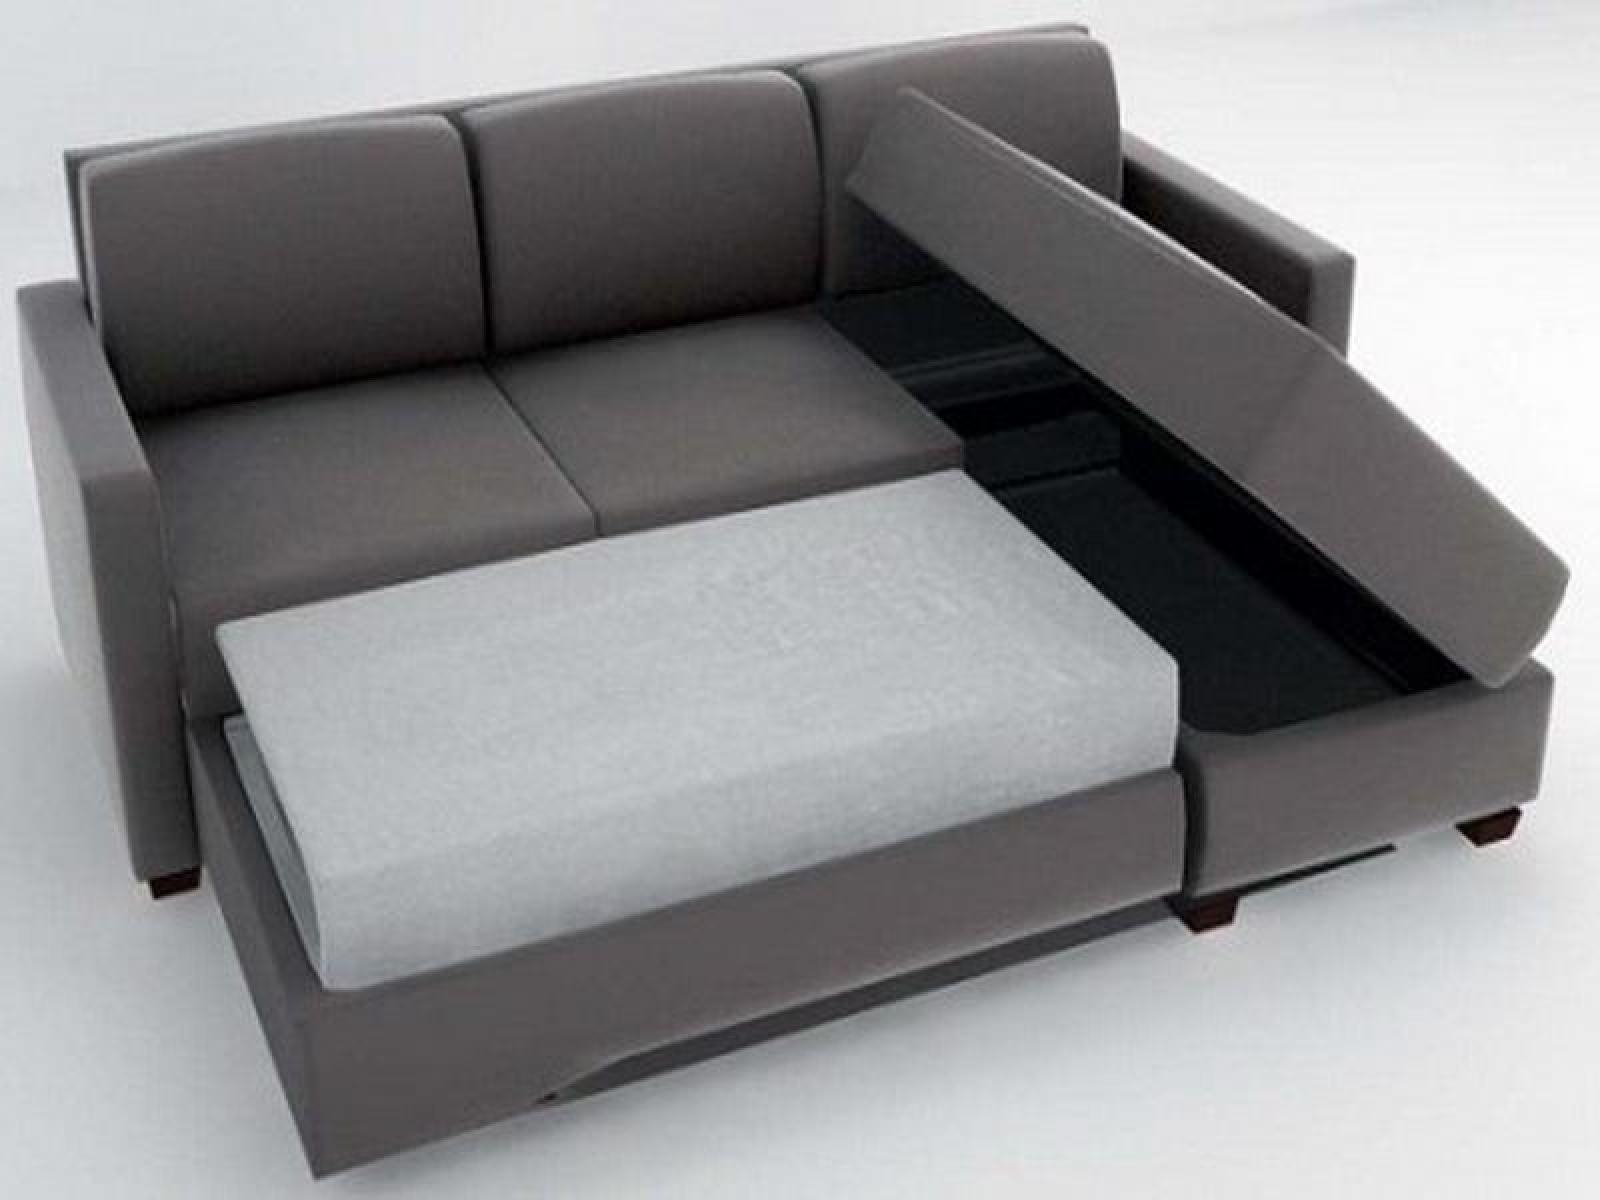 Unique Sofa Beds ~ Home Decor intended for Mini Sofa Beds